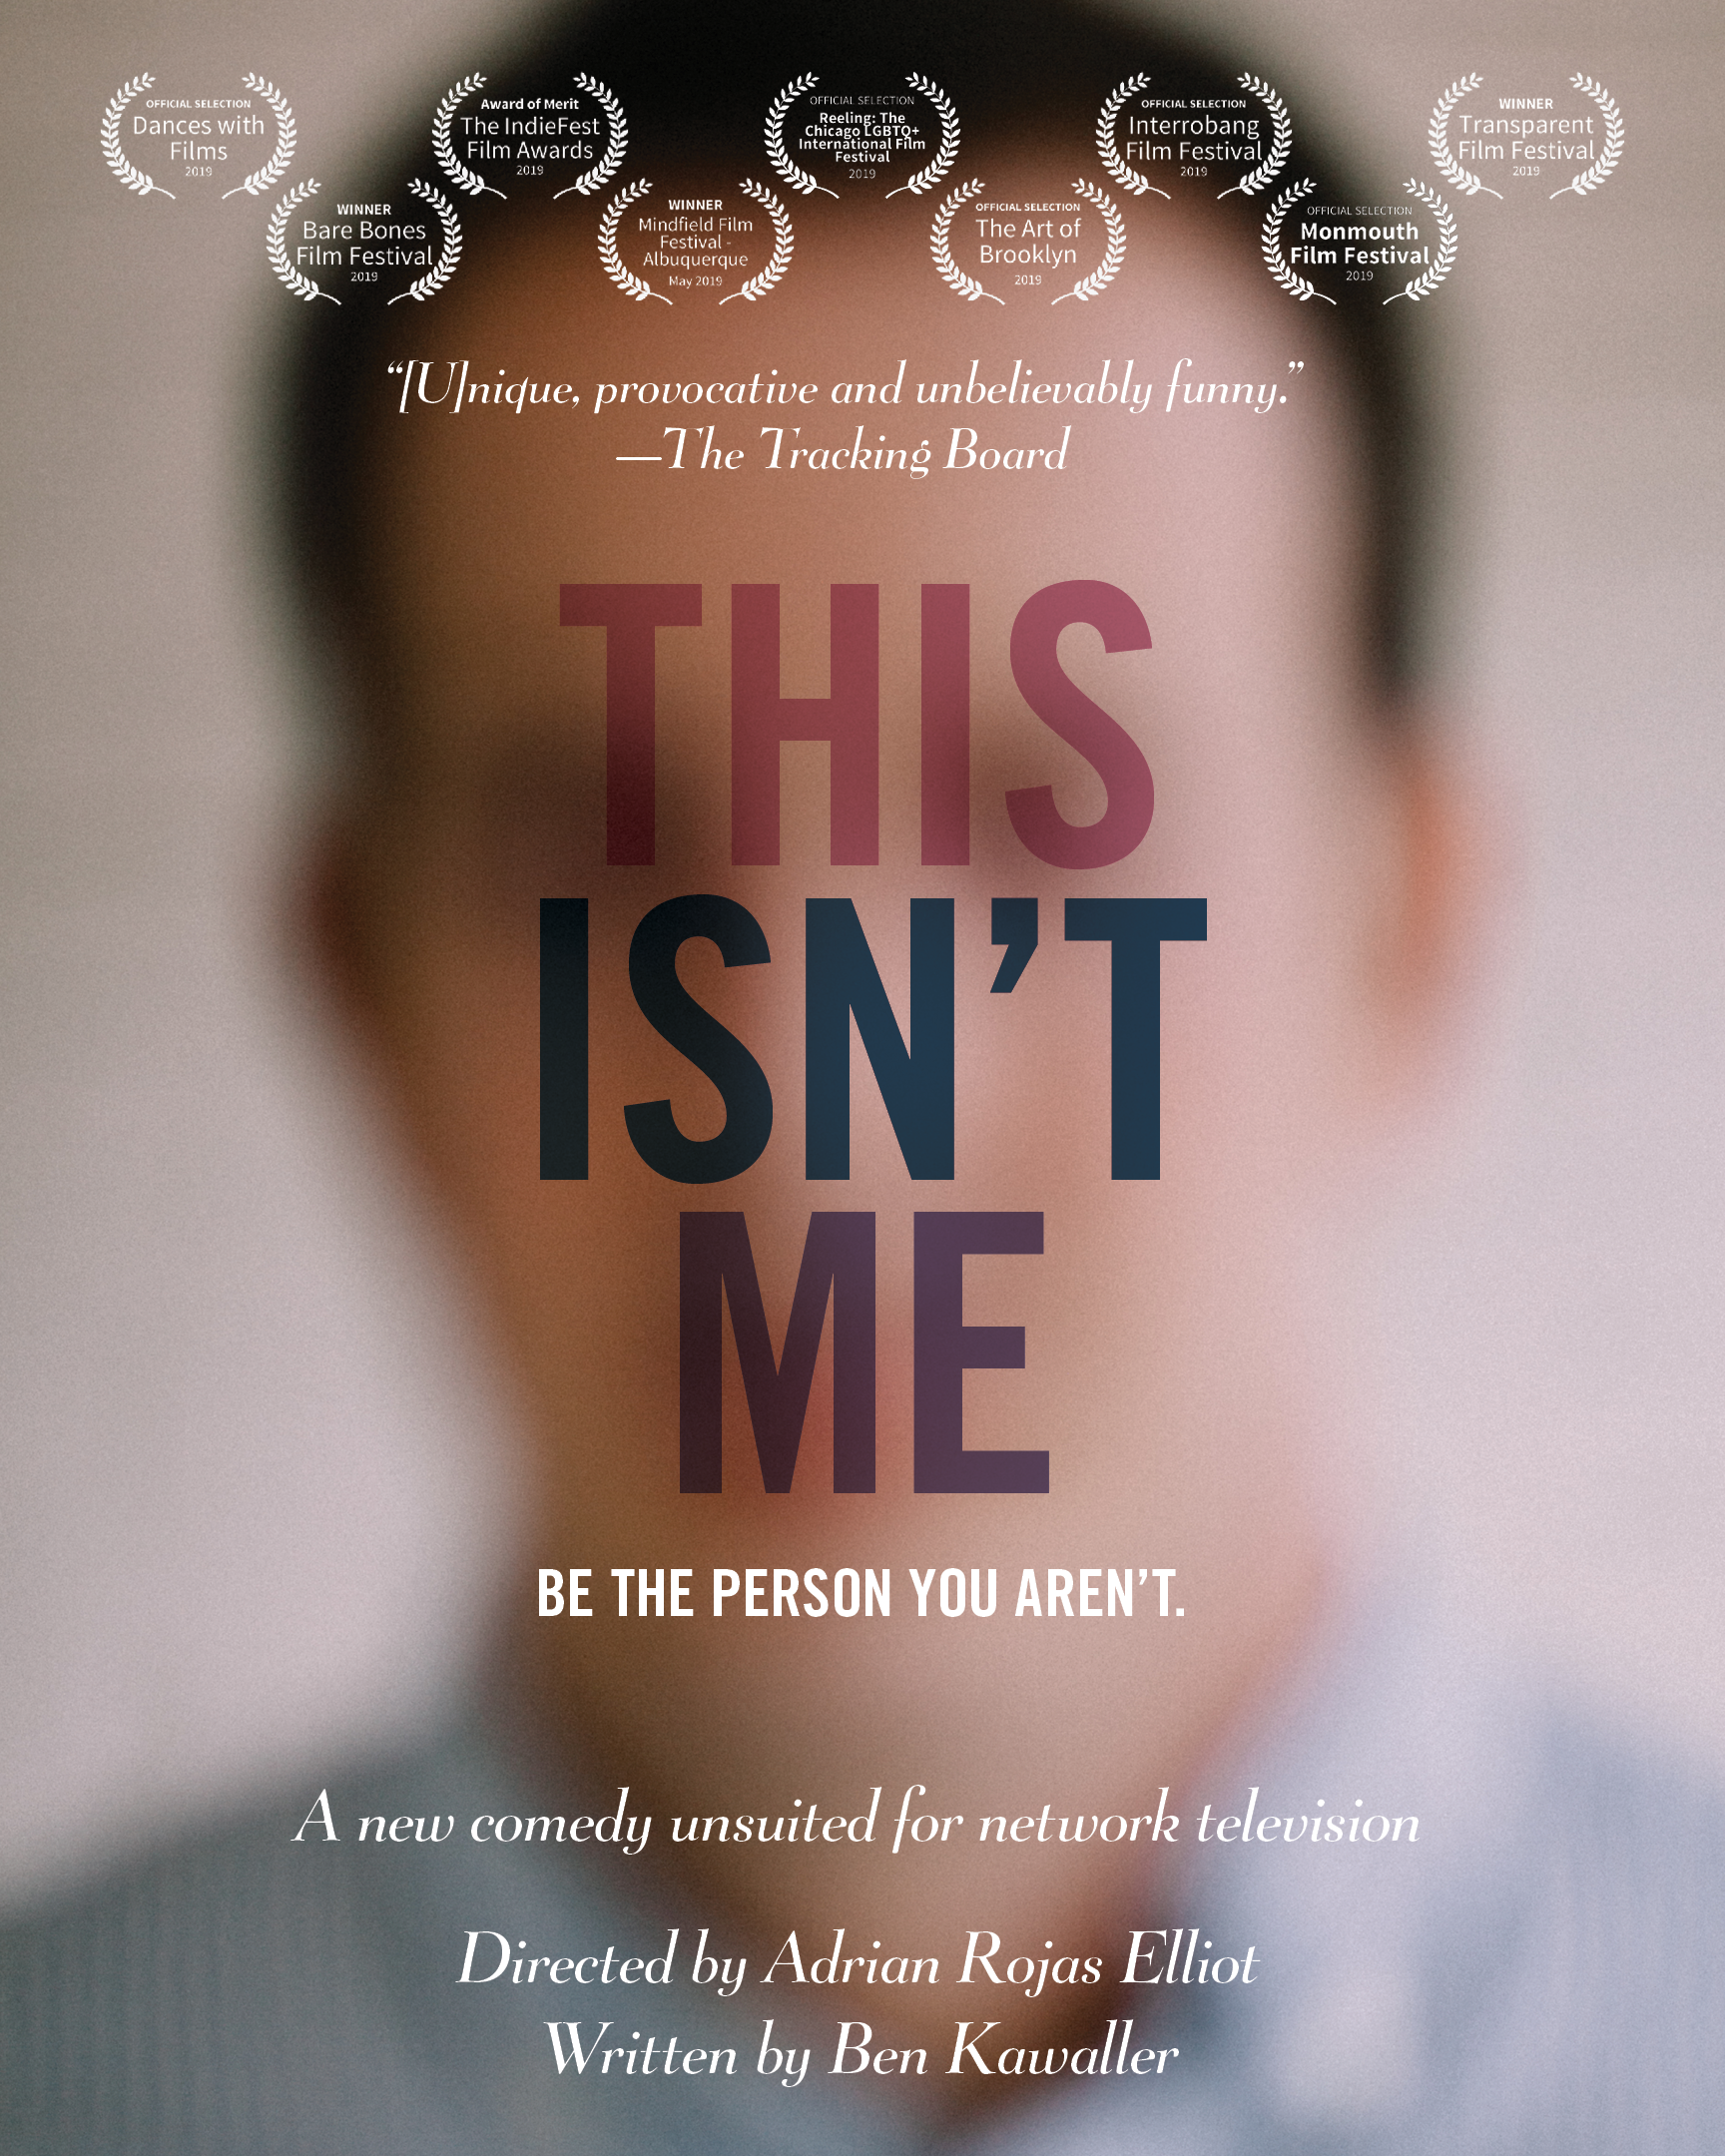 OneTwentyNineFilms_This_Isnt_Me_INSTAGRAM_4x5_poster.png